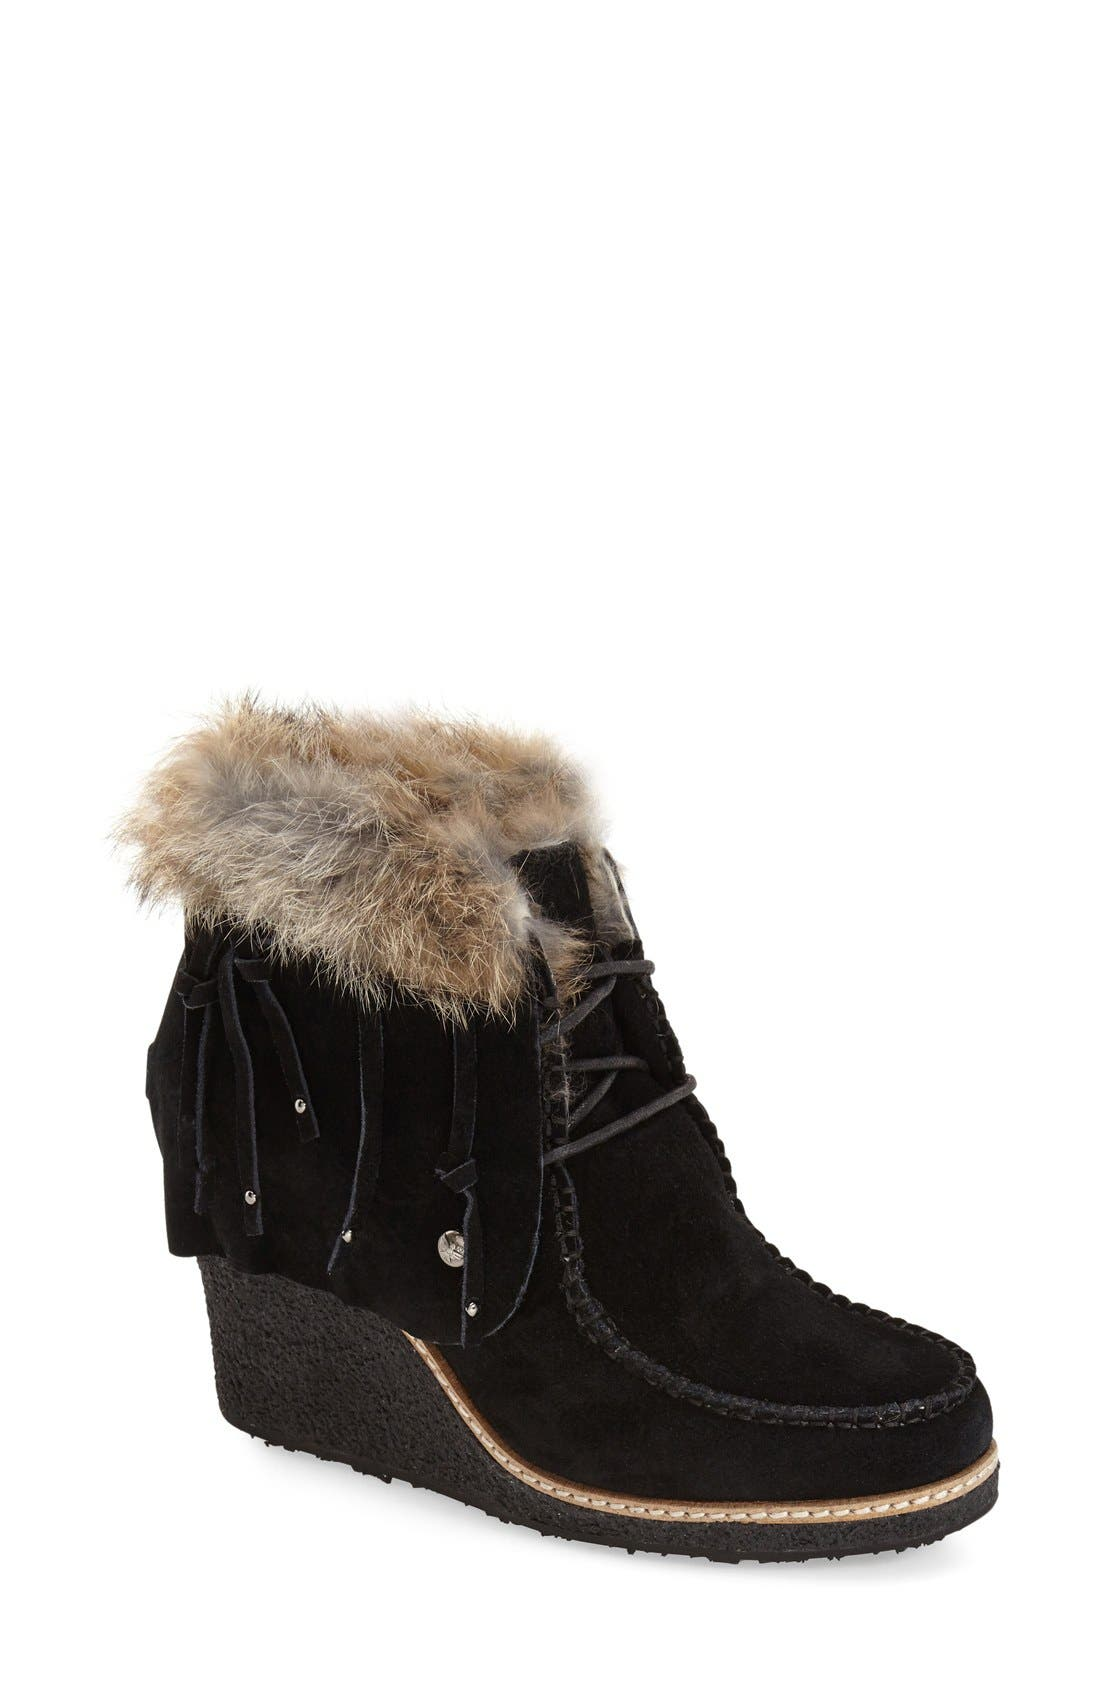 Alternate Image 1 Selected - Australia Luxe Collective 'Mantra' Genuine Shearling & Genuine Rabbit Fur Boot (Women)